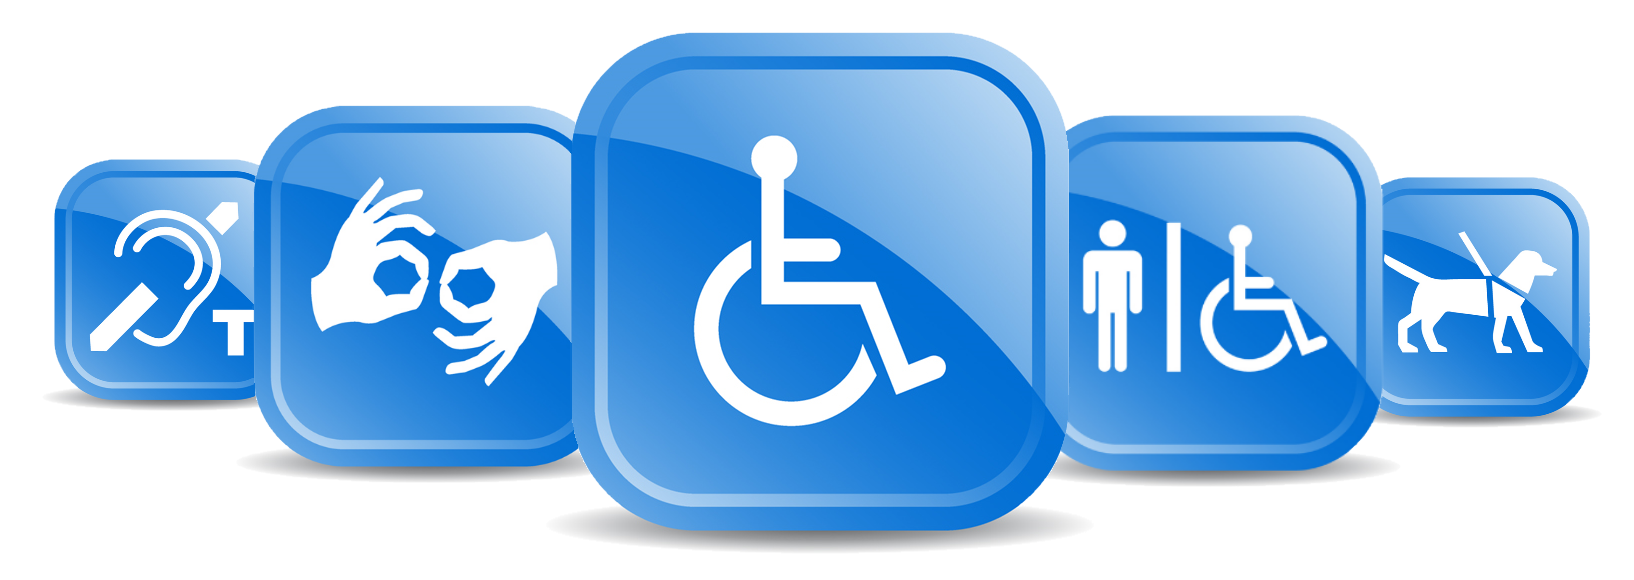 5 blue colored symbols of accessibility in a row: hearing impairment, sign language, wheelchair, wheelchair bathroom, guide dog